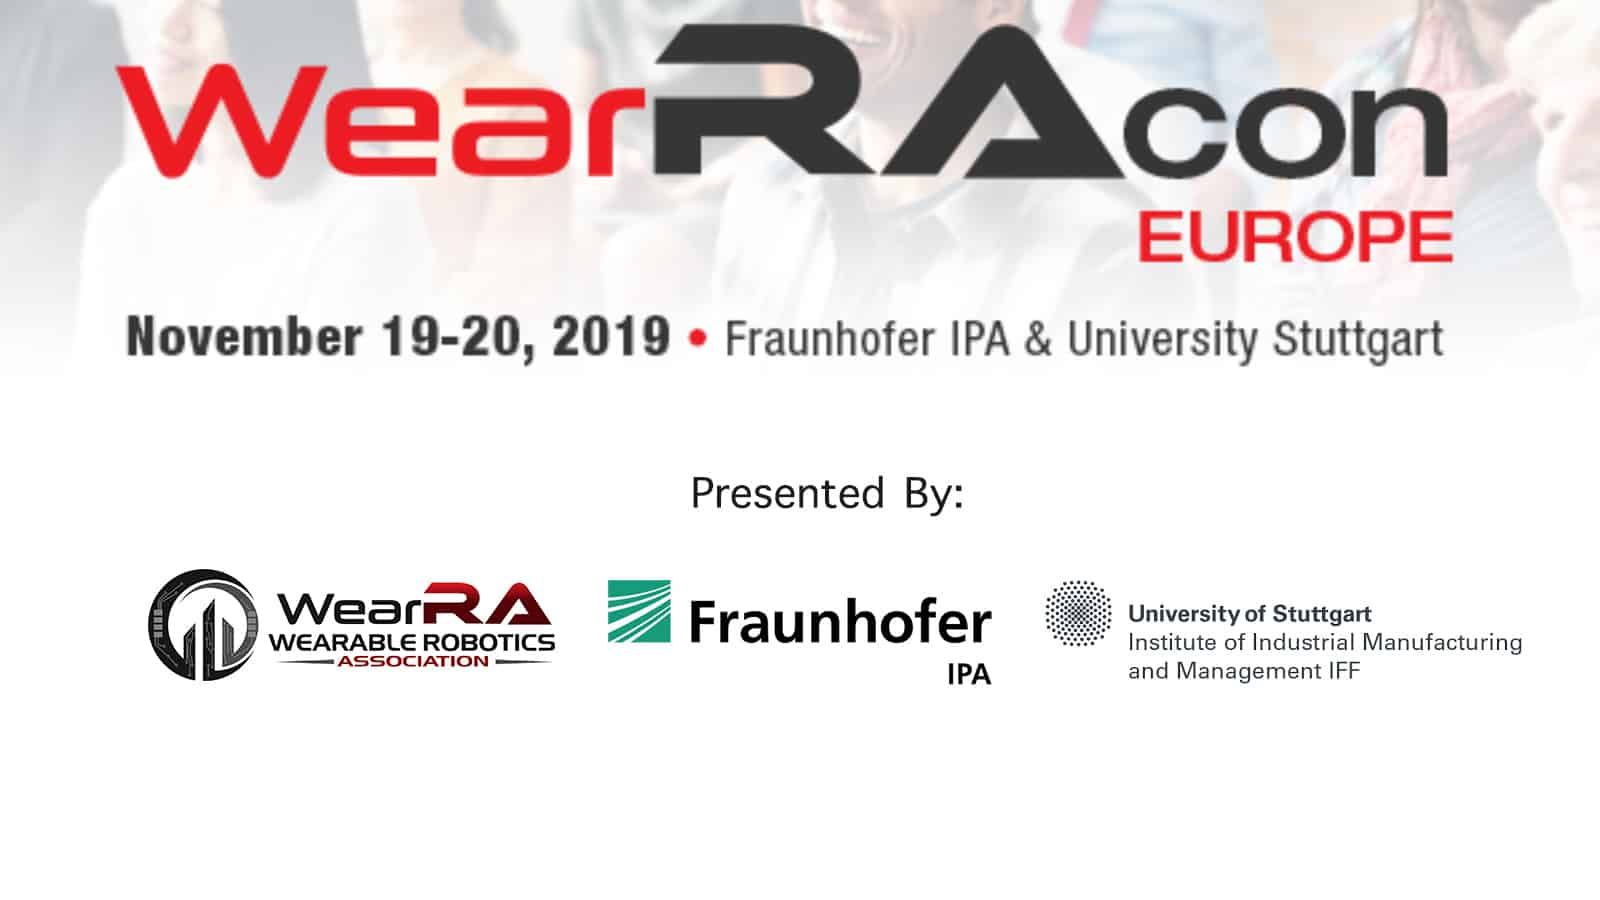 WearRAcon Europe 19